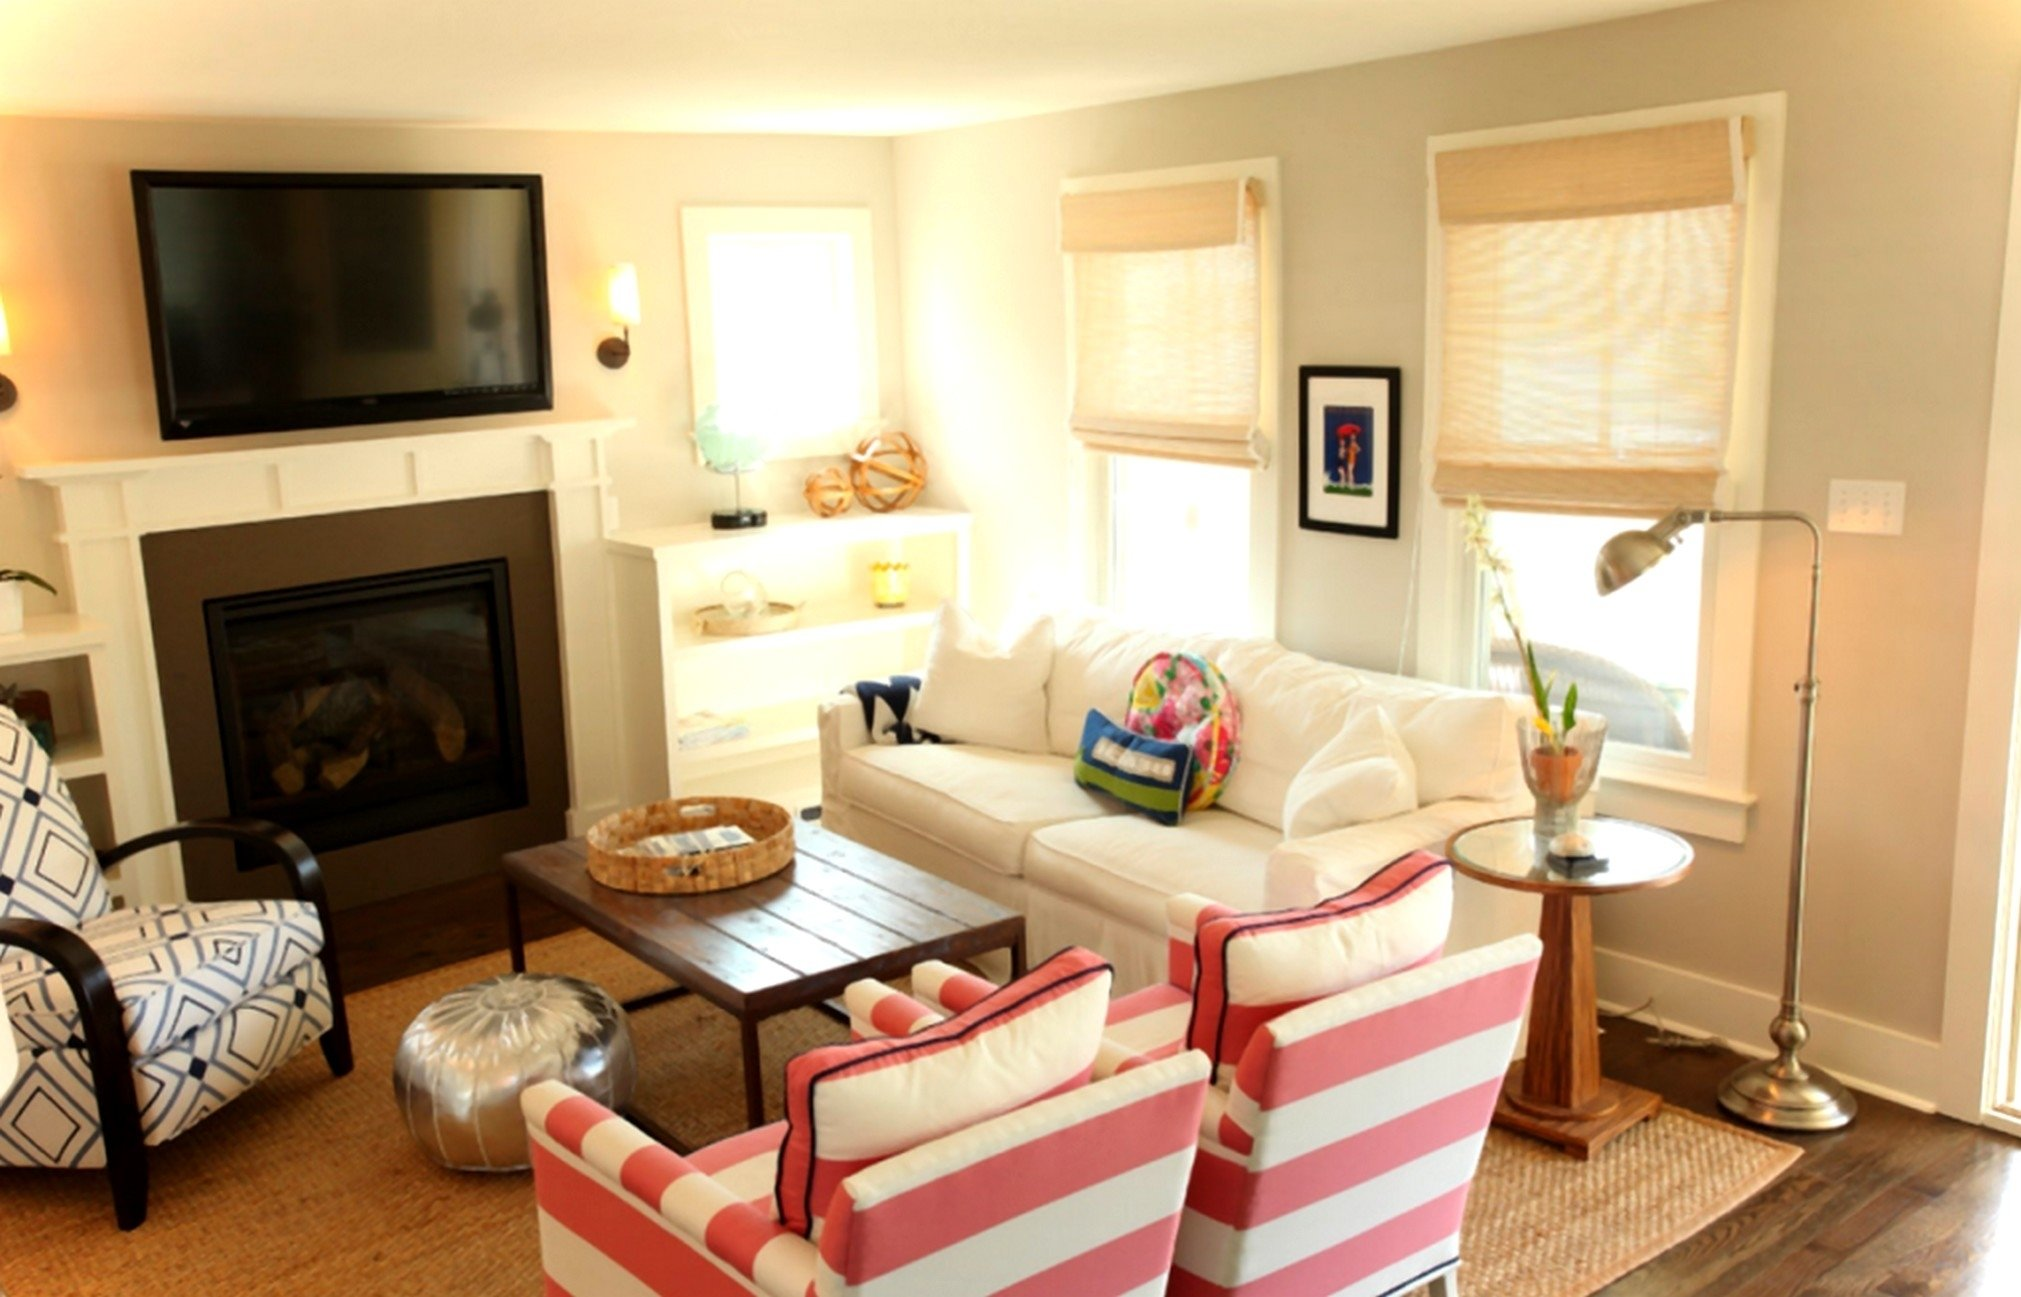 10 Elegant Living Room Ideas With Fireplace living room with tv arrangements beautiful simple living rooms 2021